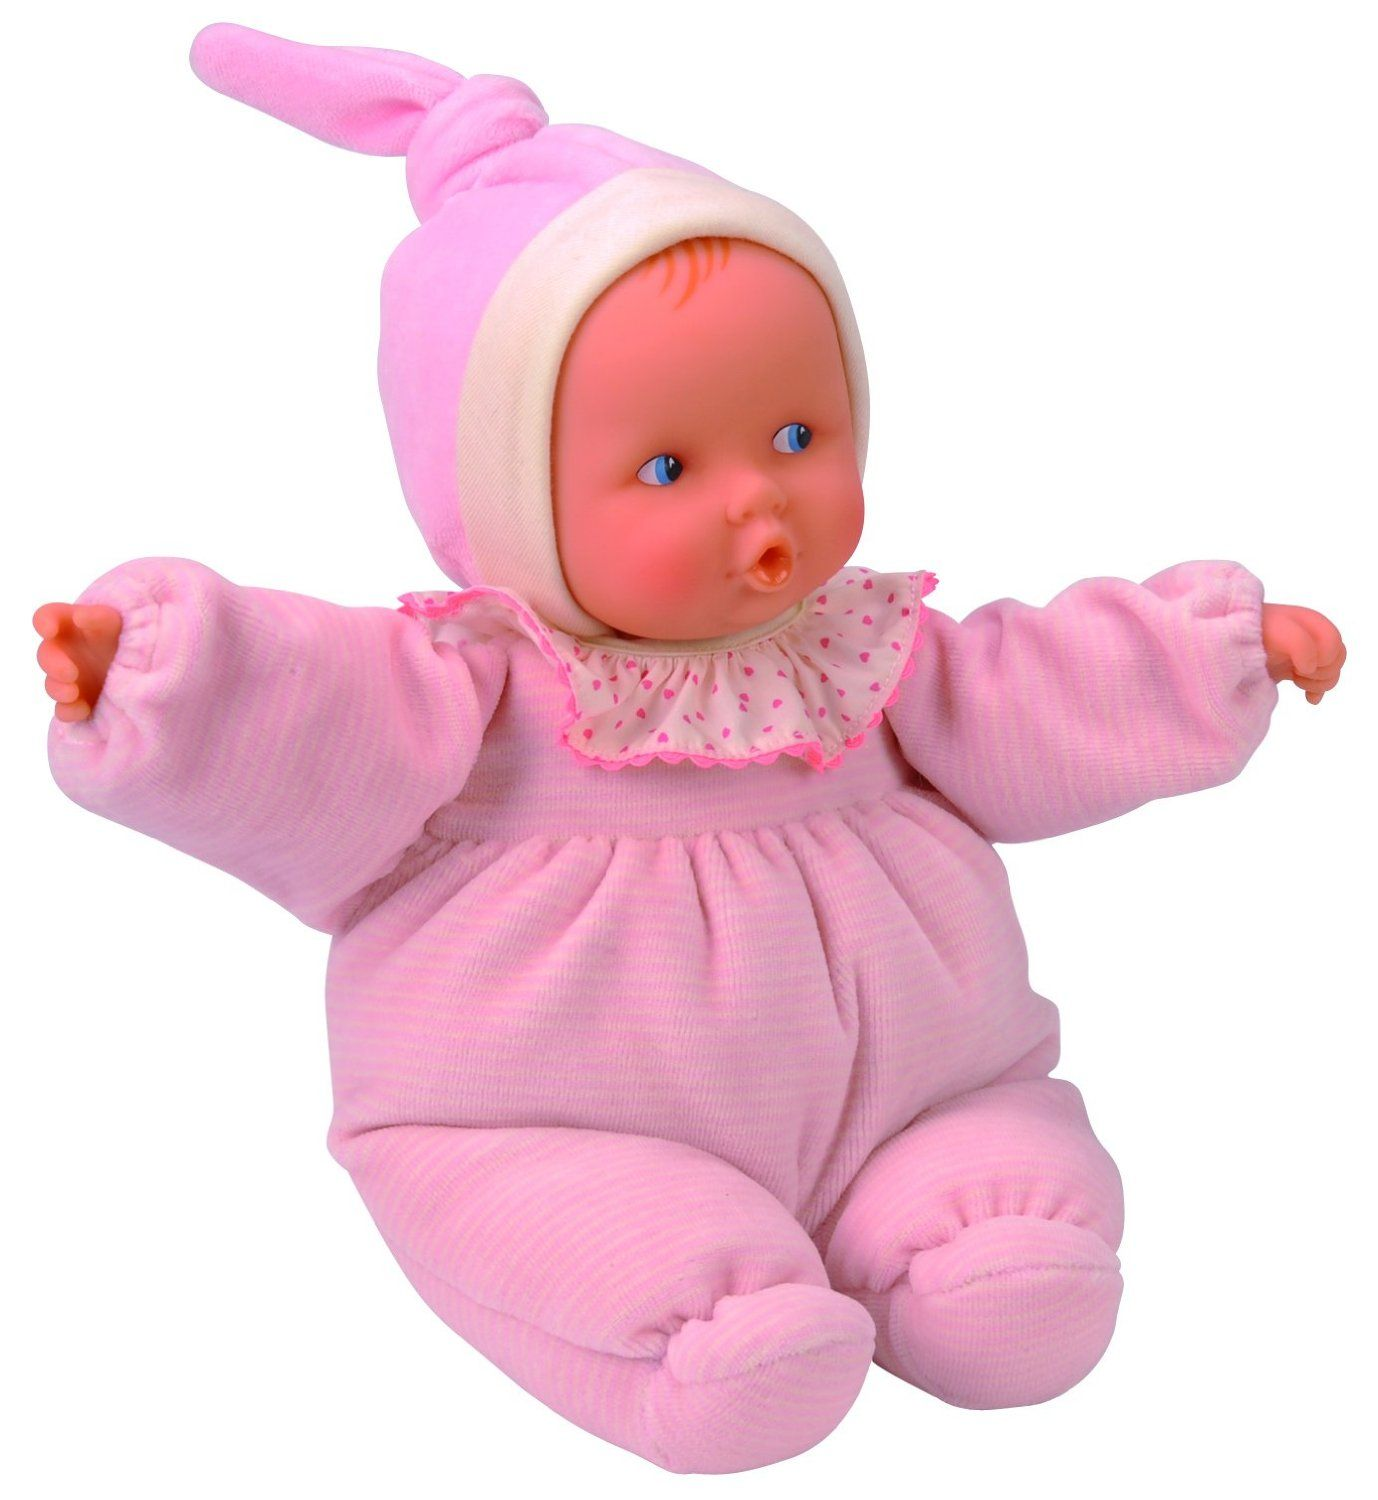 Babipouce Pink Striped 11 Inch - Play Doll by Corolle (CJC23)